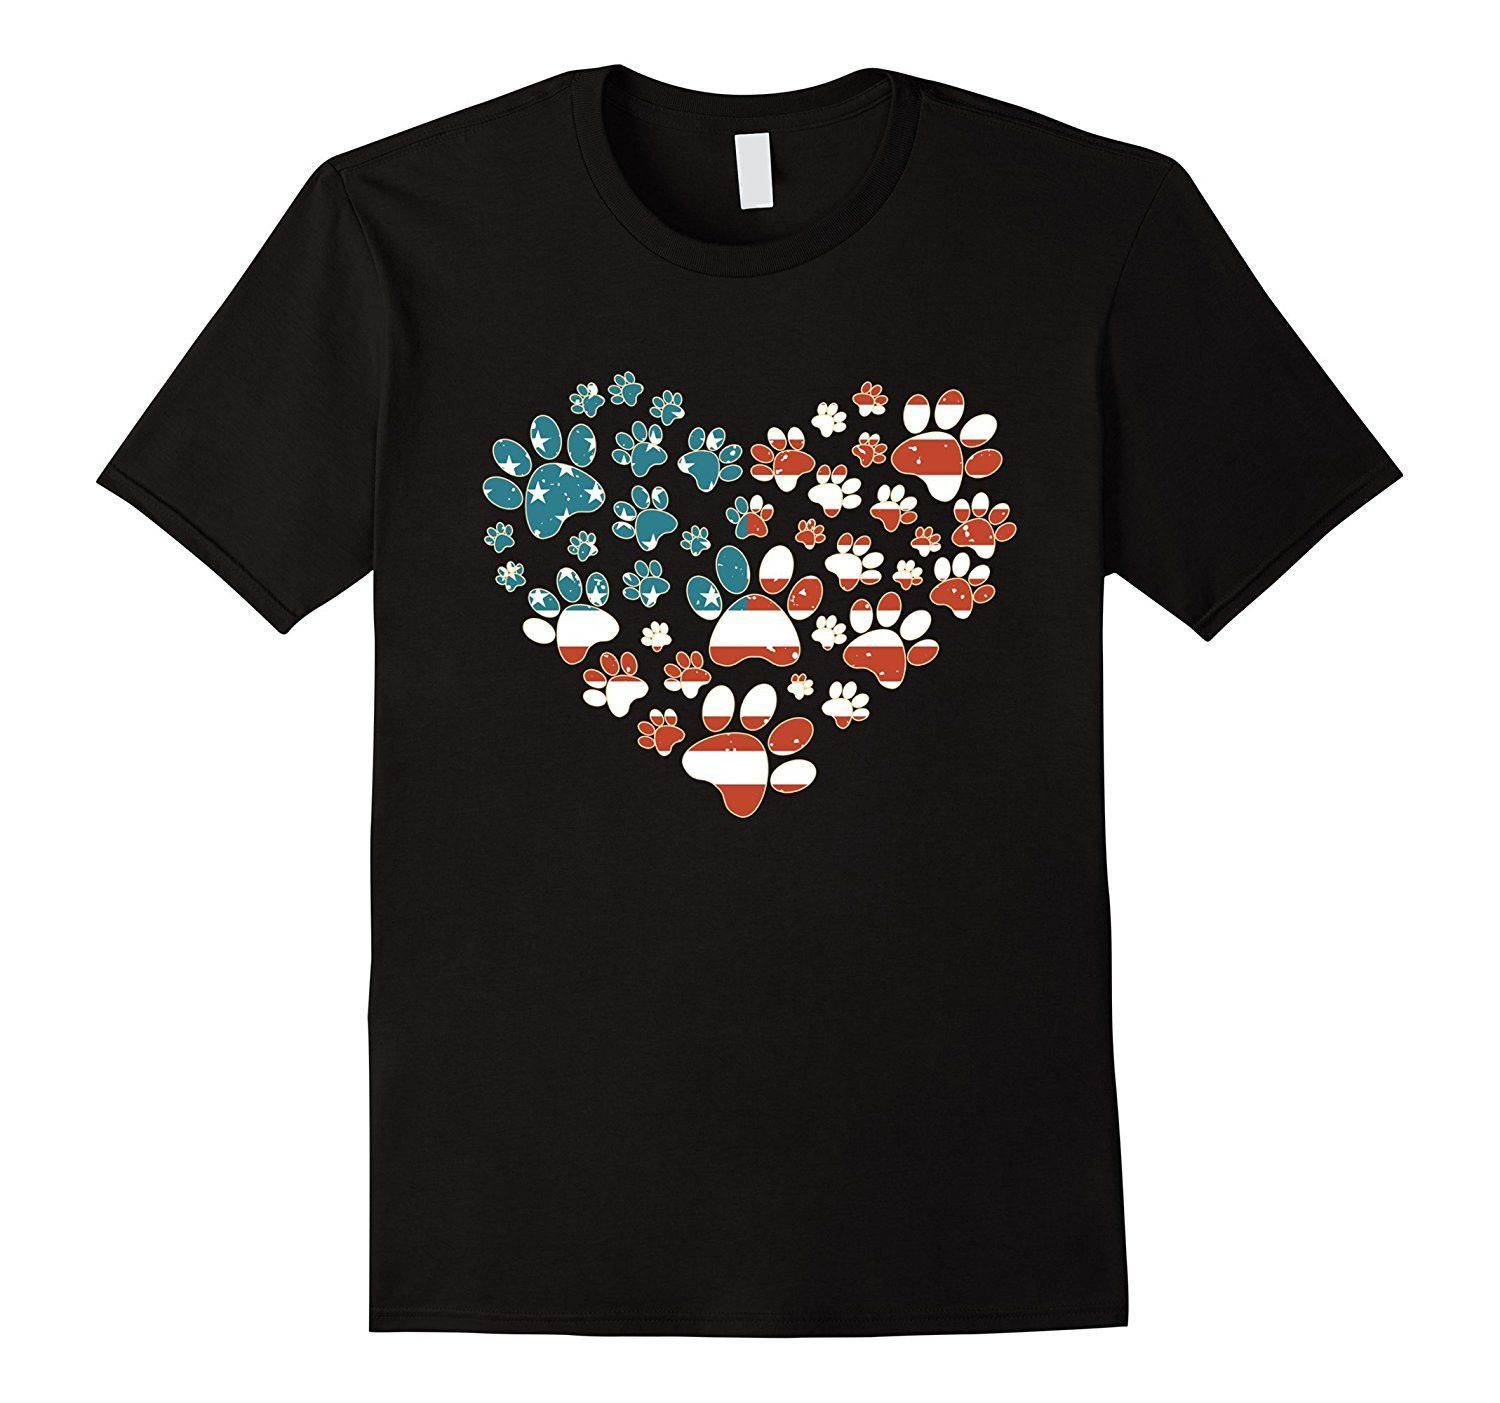 USA FLAG shirt for Who loves Dogs: DOG FOOTPRINT with HEART